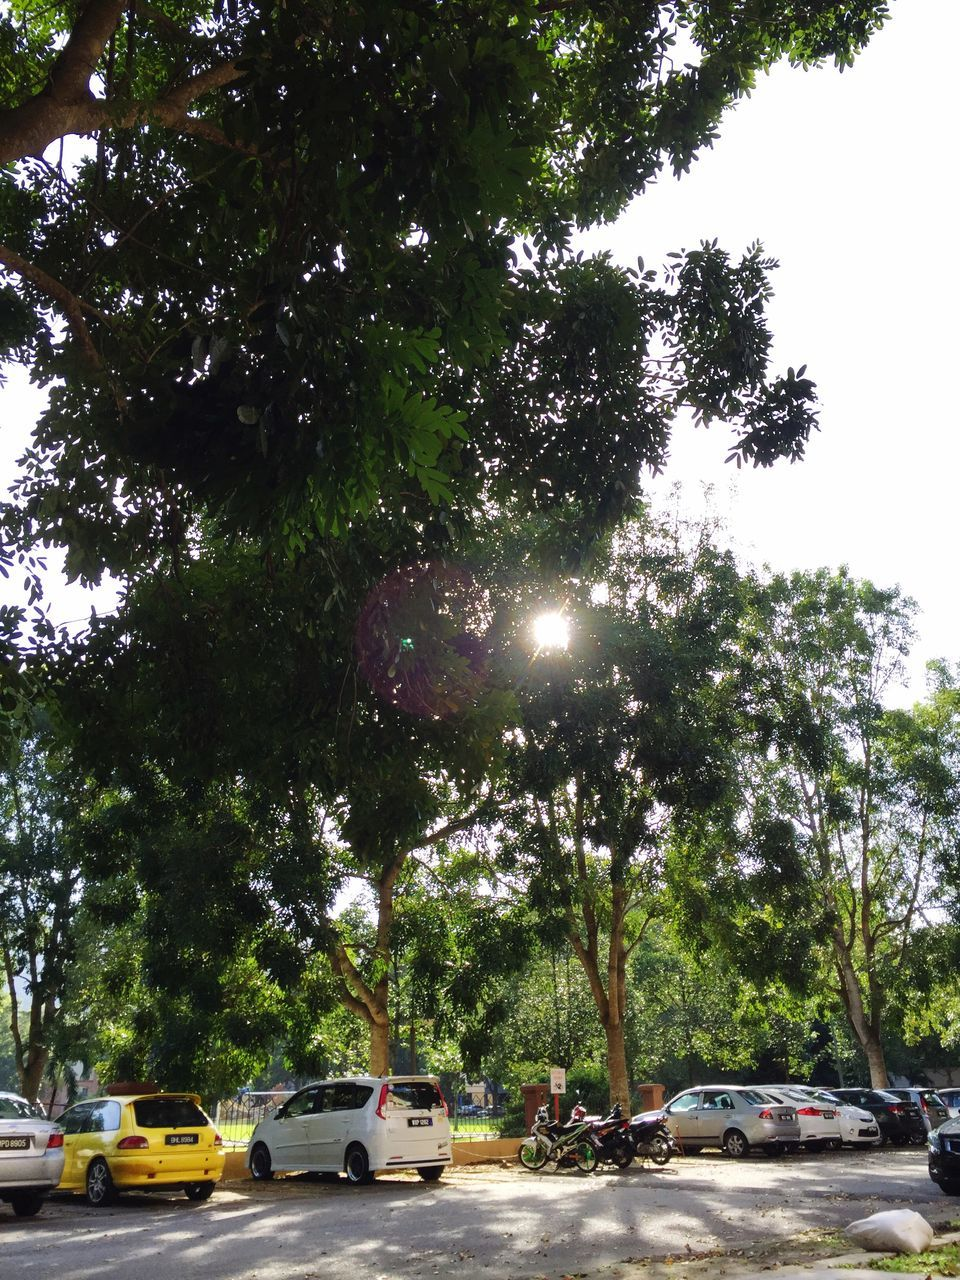 tree, car, transportation, land vehicle, mode of transport, day, outdoors, road, growth, sunlight, stationary, nature, branch, no people, sky